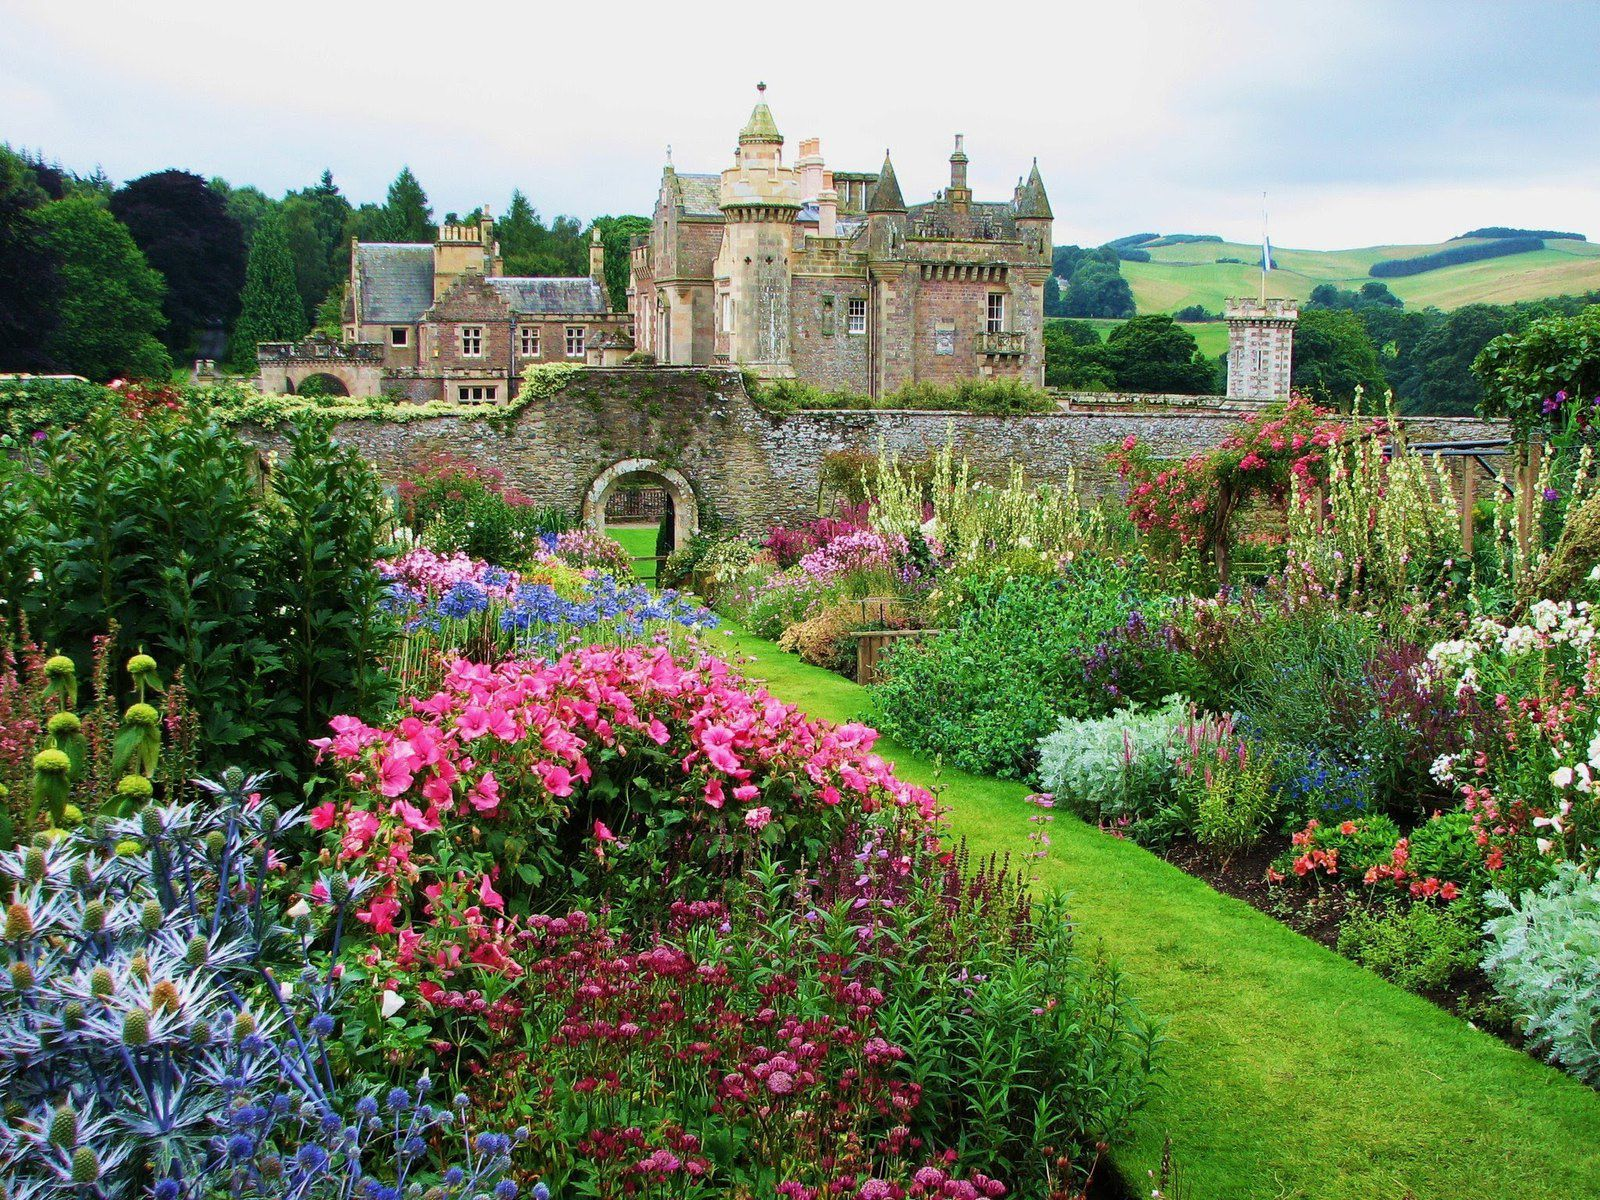 Abbotsford House, Roxburgh, Scotland - Source: youtube.com